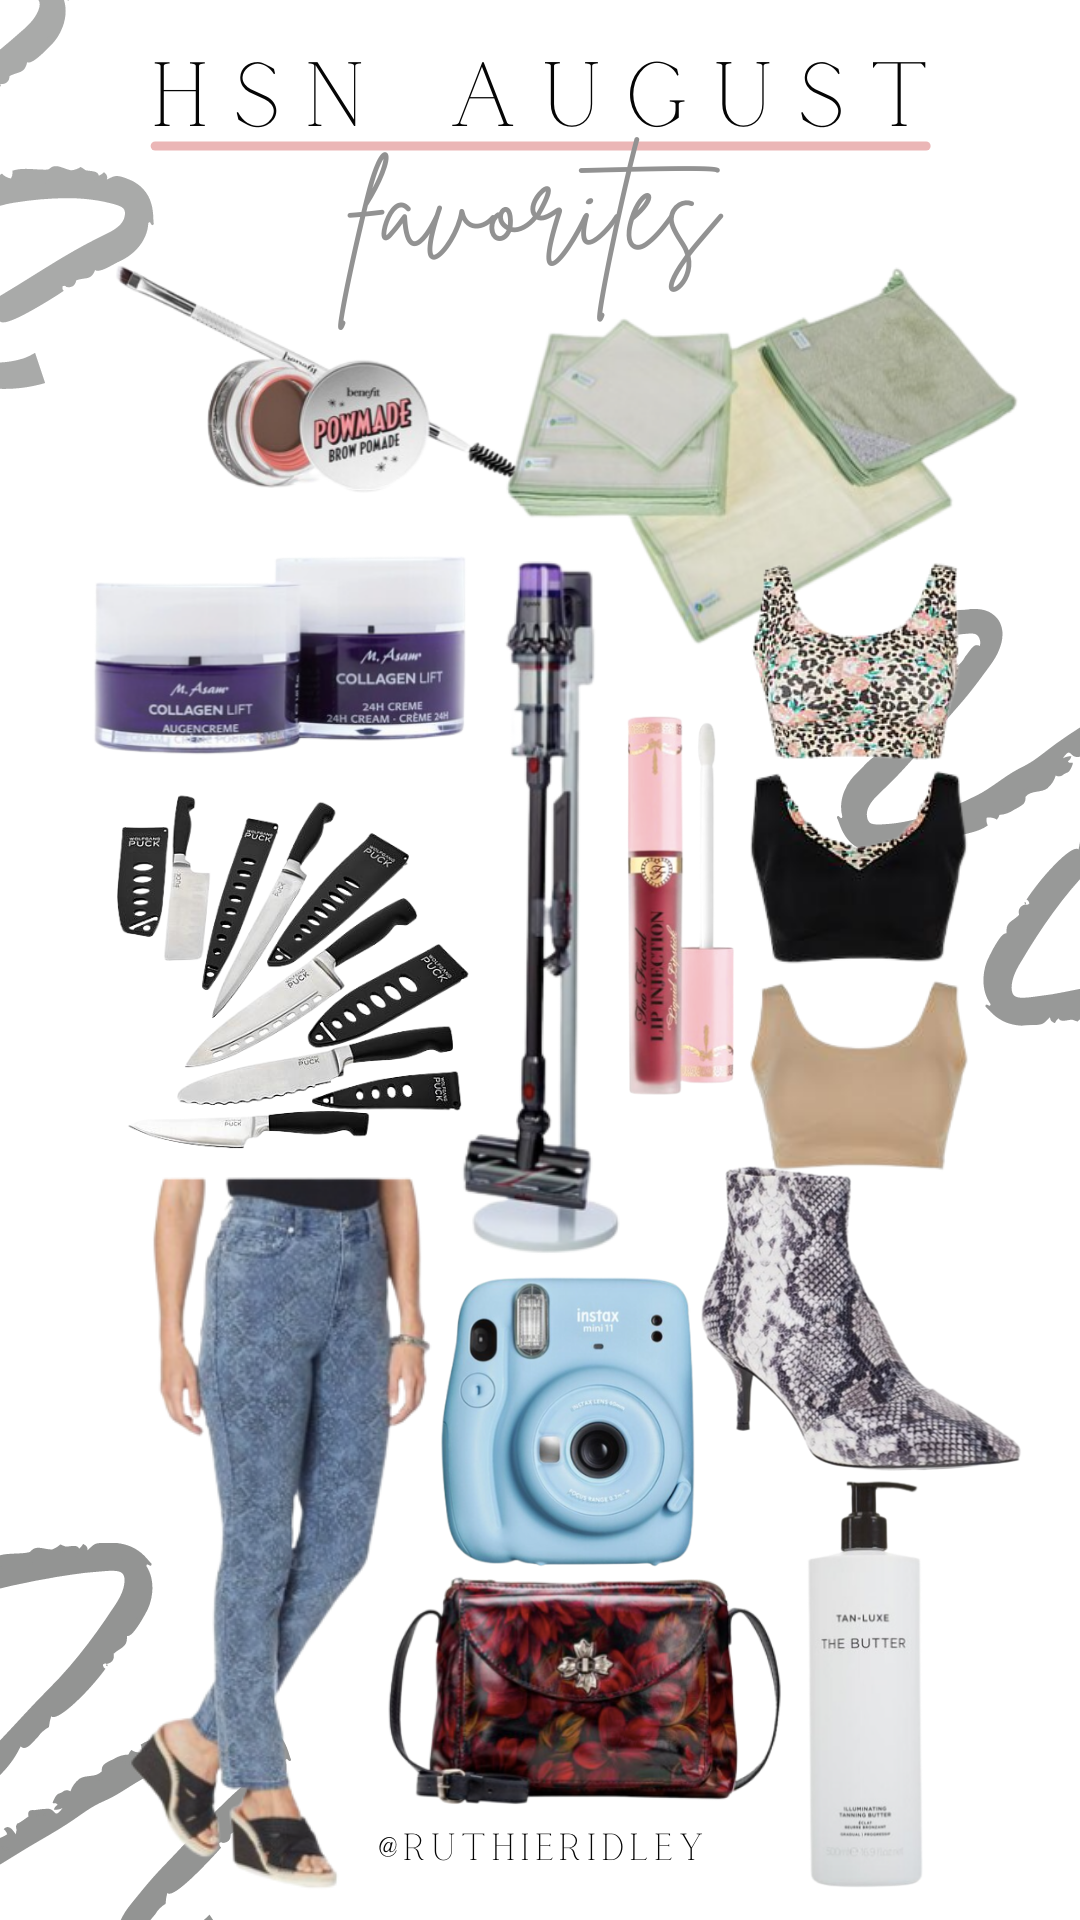 Ruthie Ridley Blog August Favorites From HSN